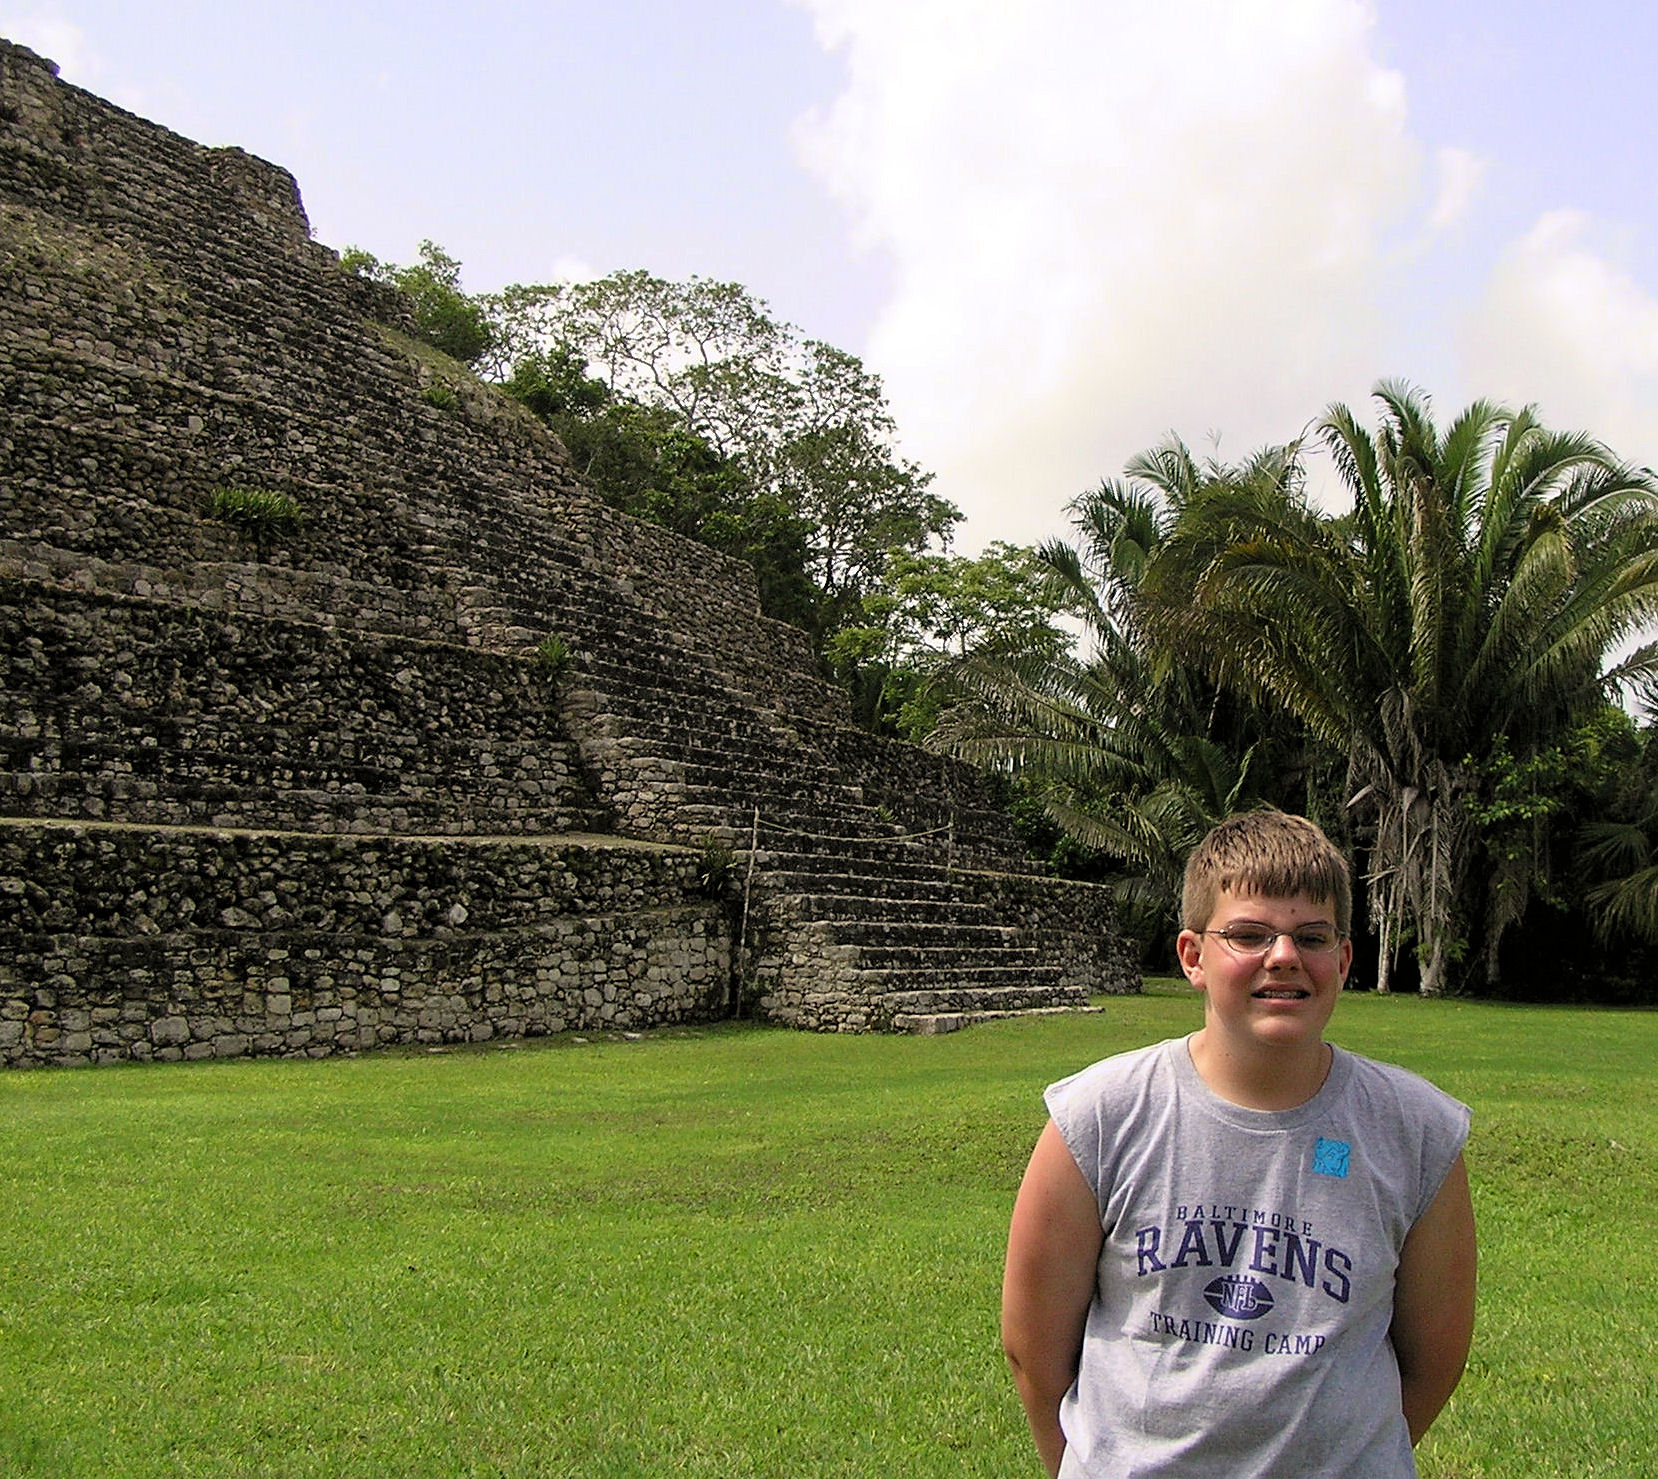 Me in Costa Maya, Mexico—an excursion on the Disney Cruise Line.